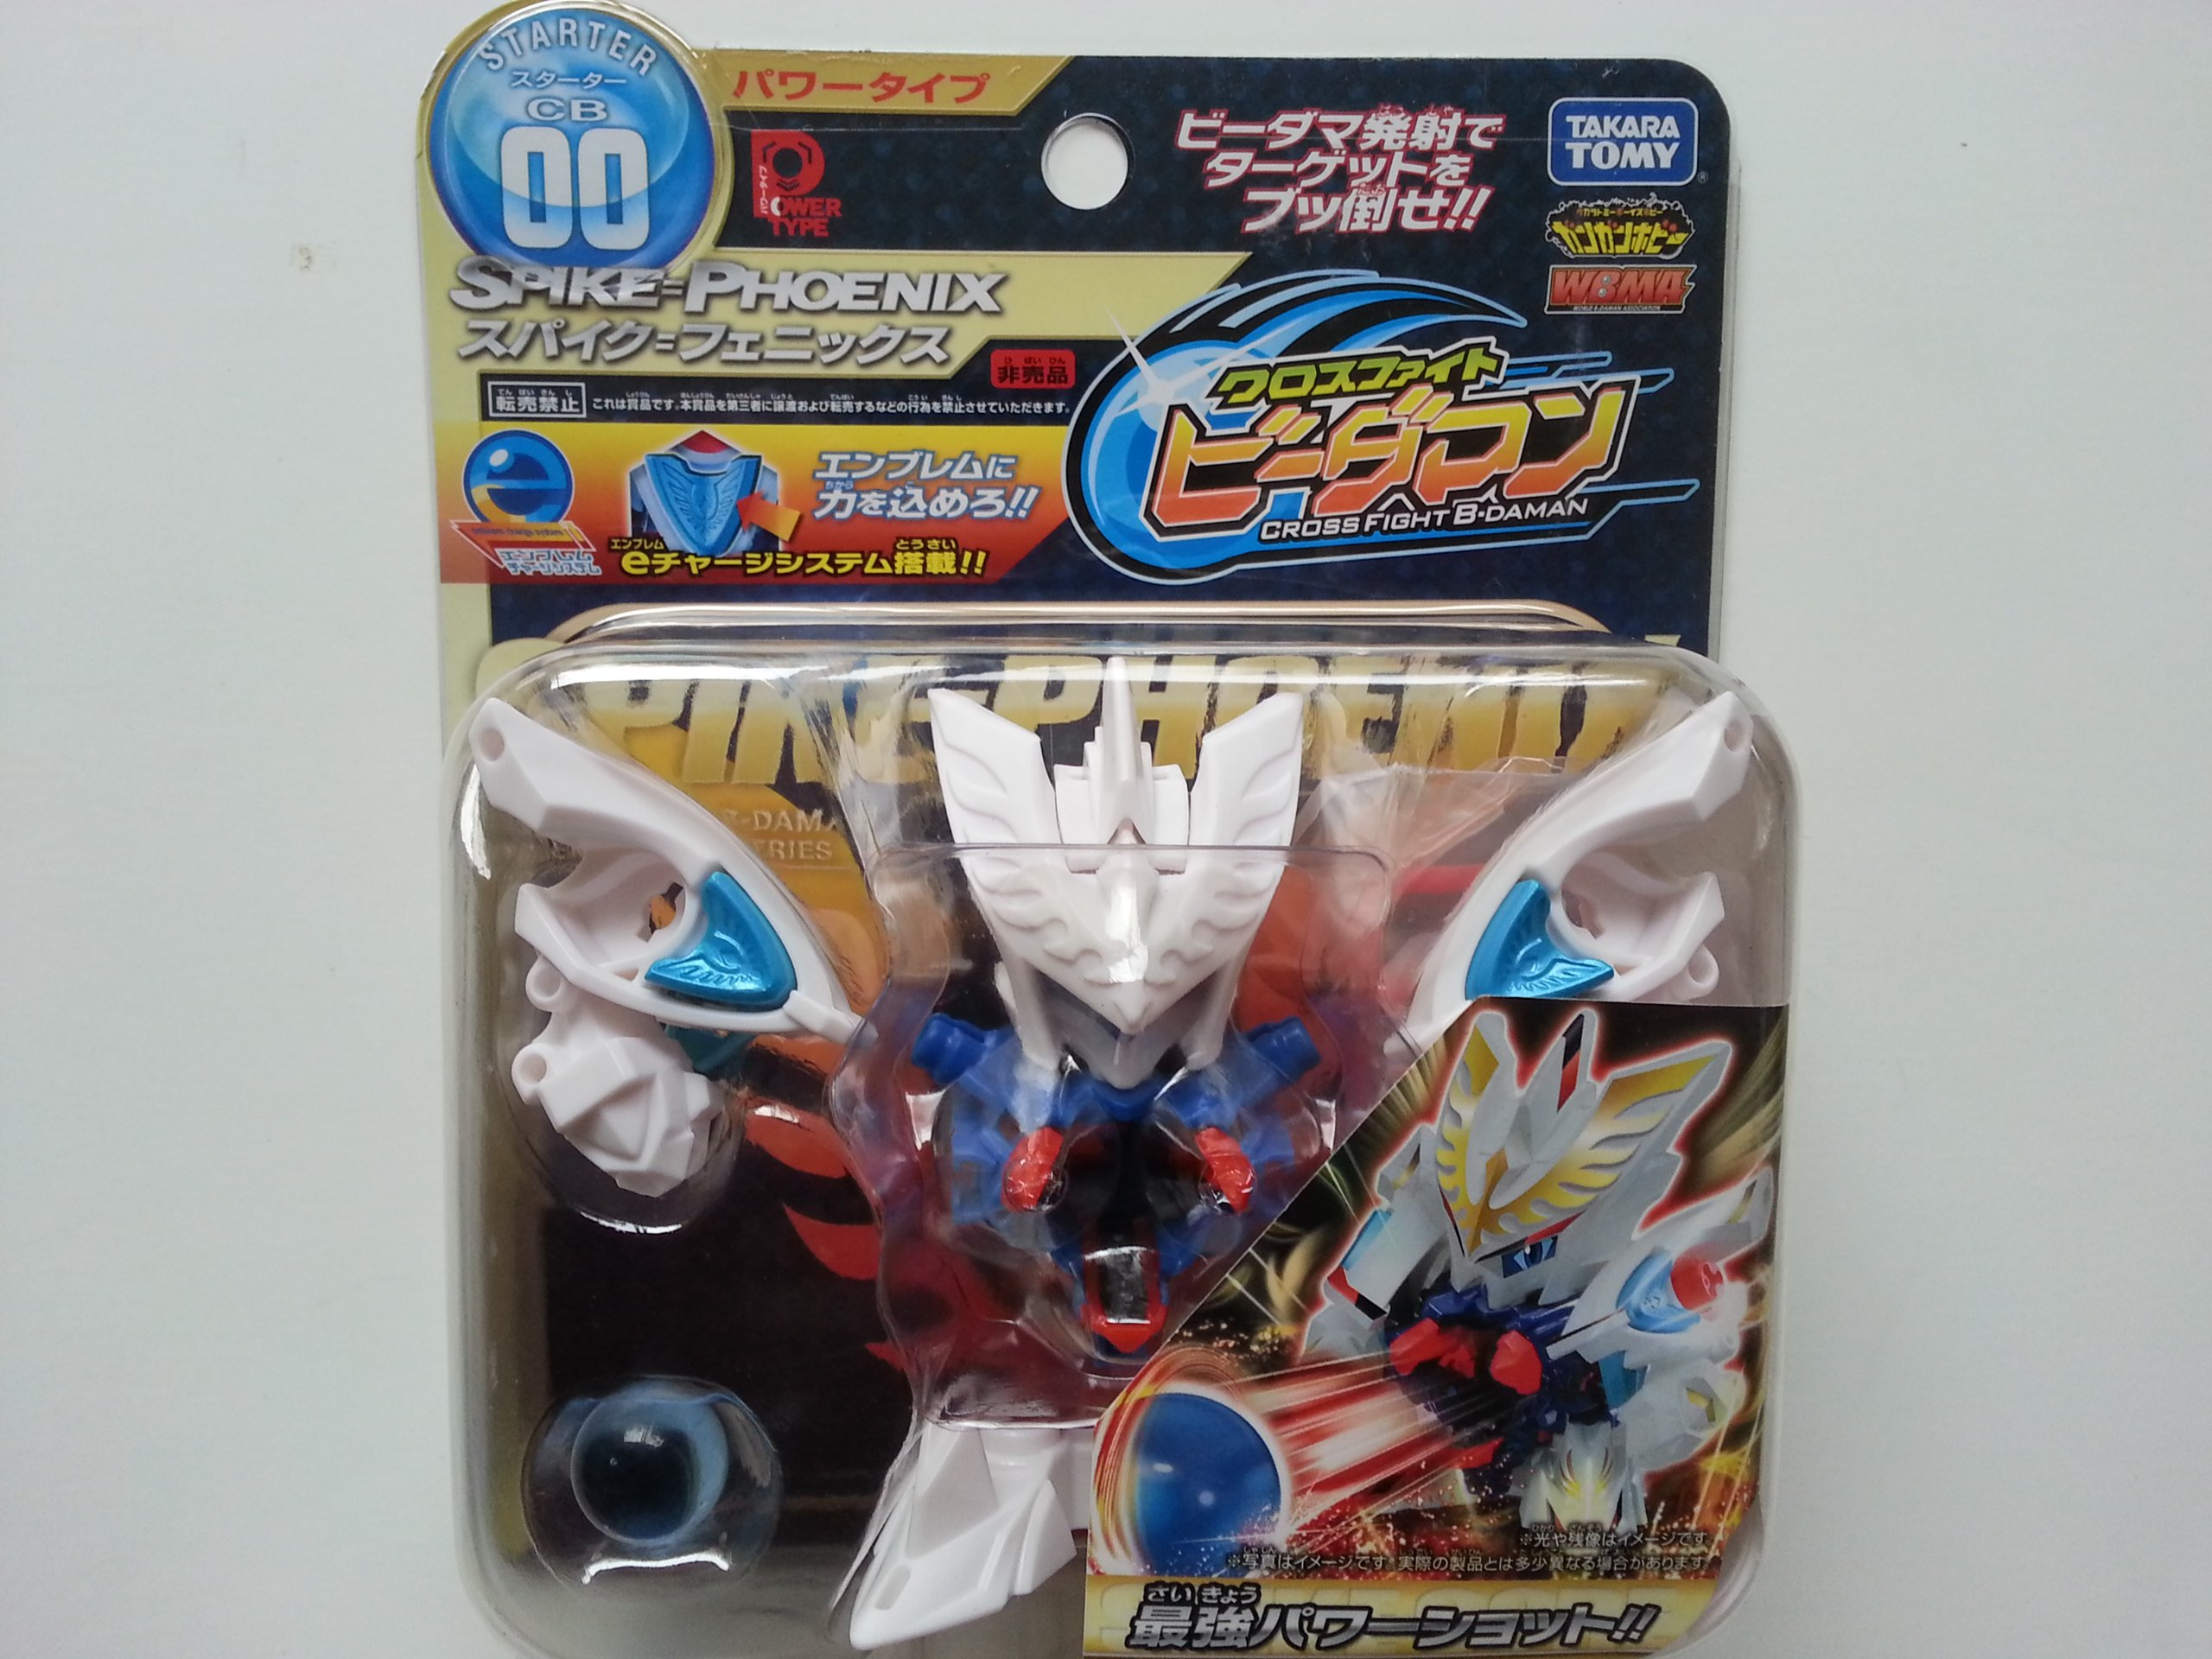 Takara Tomy Cross Fight B-Daman eS Limited Edition CB-00 Spike = Phoenix by Takara Tomy